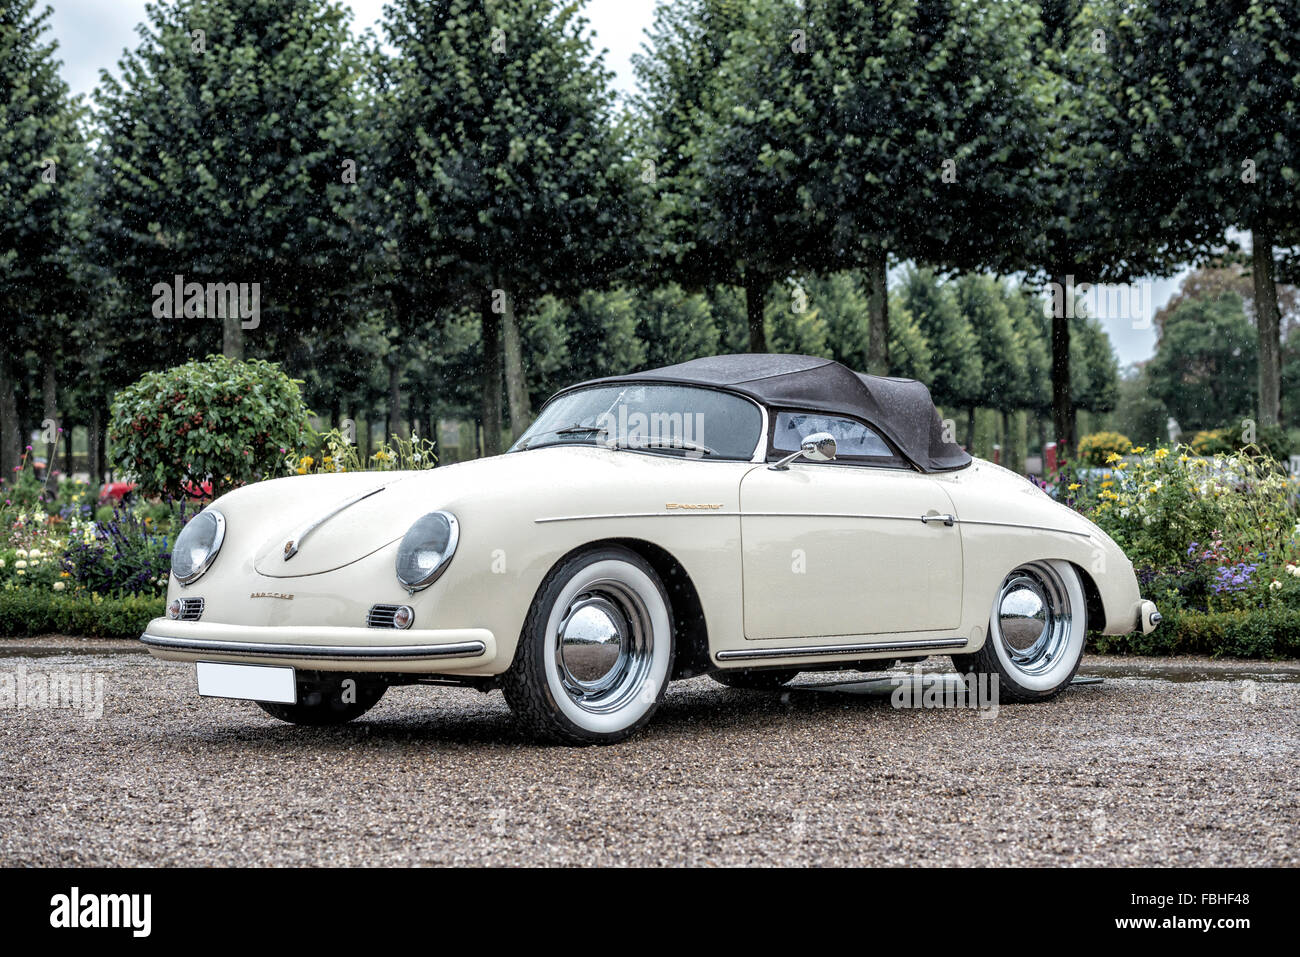 porsche 356 speedster stock photos porsche 356 speedster. Black Bedroom Furniture Sets. Home Design Ideas